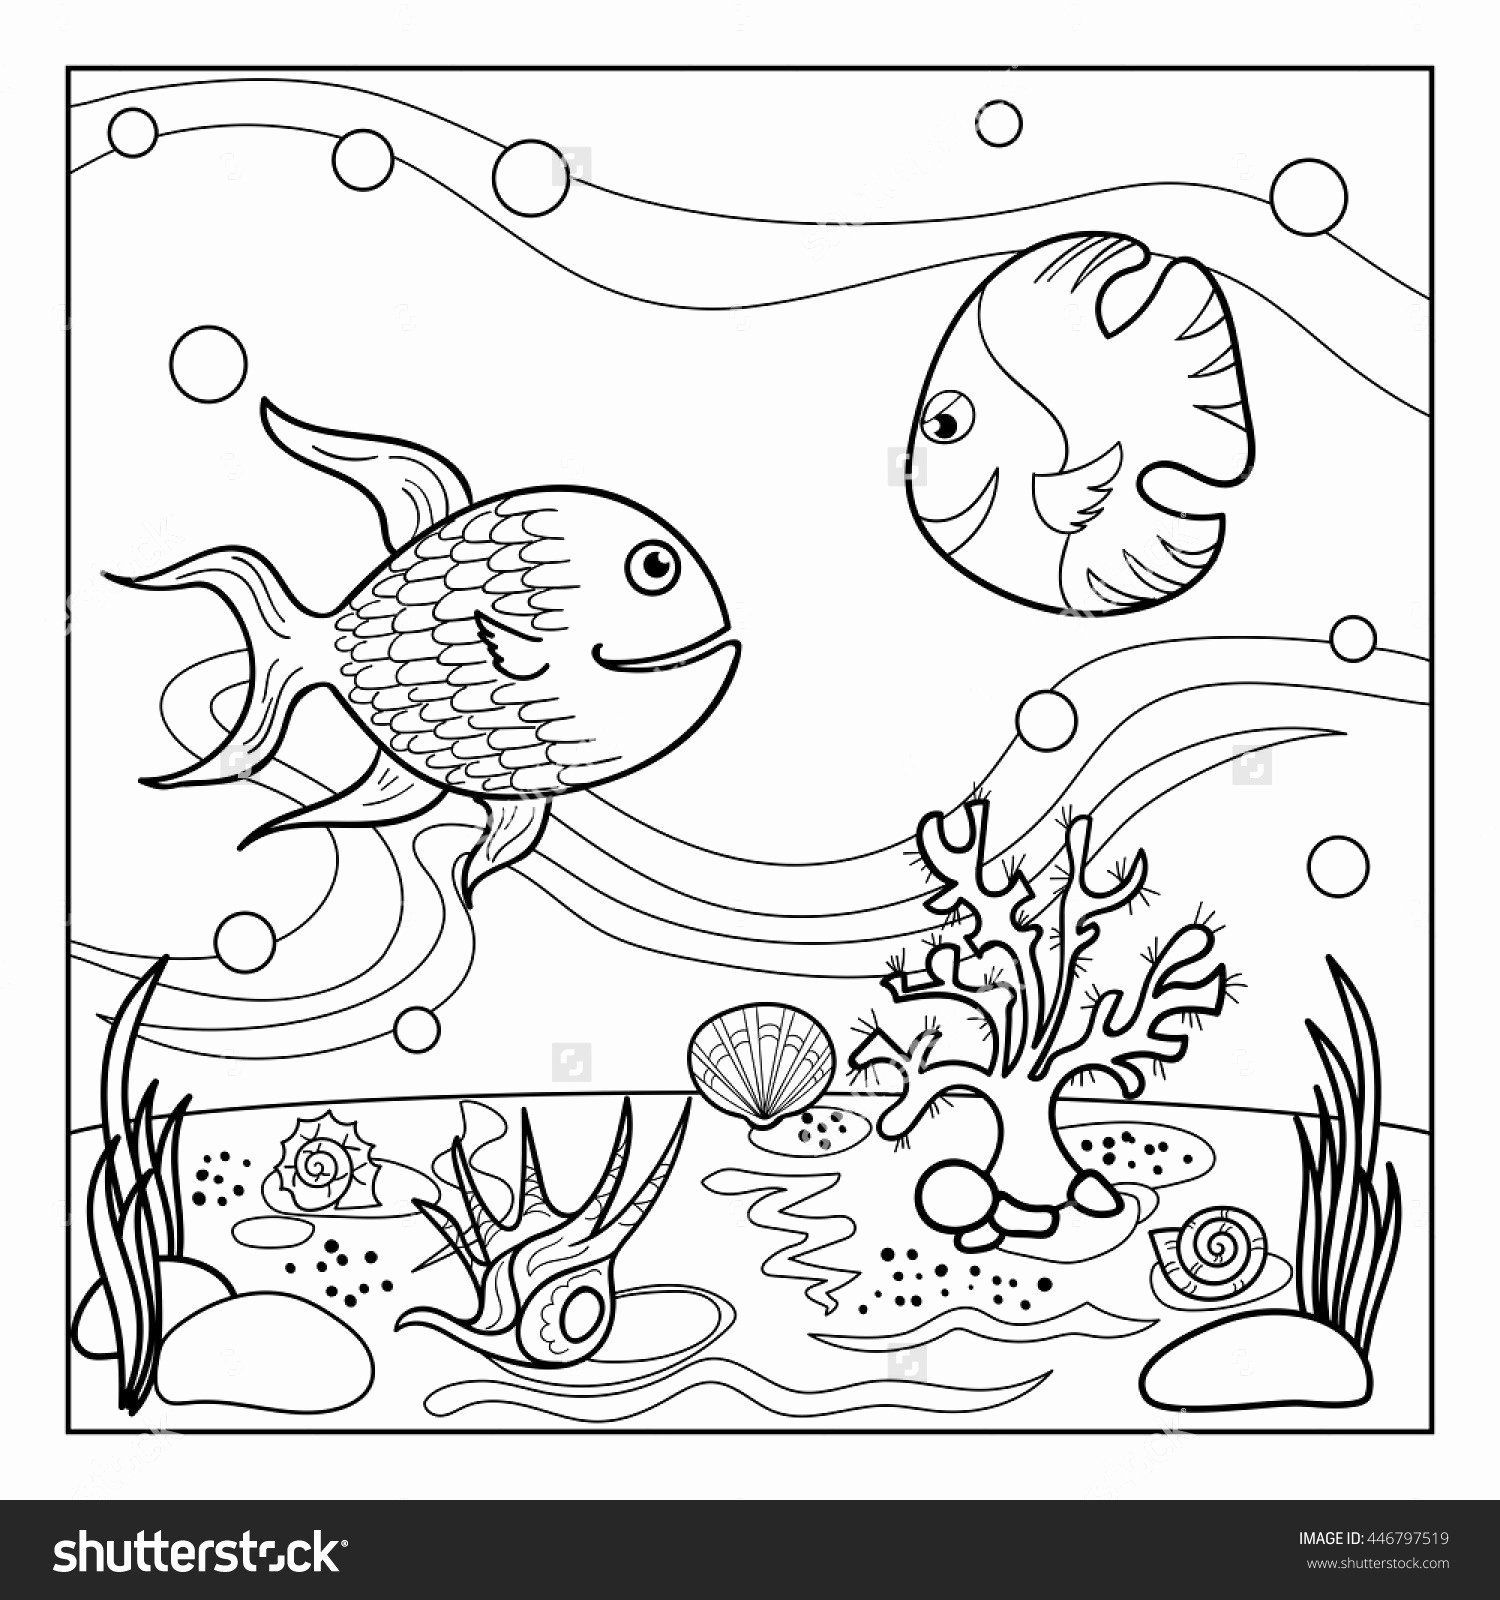 Printing Halloween Coloring Pages Best Of 57 Awesome Coloring Pages Websites Halloweenc Unicorn Coloring Pages Animal Coloring Pages Paw Patrol Coloring Pages